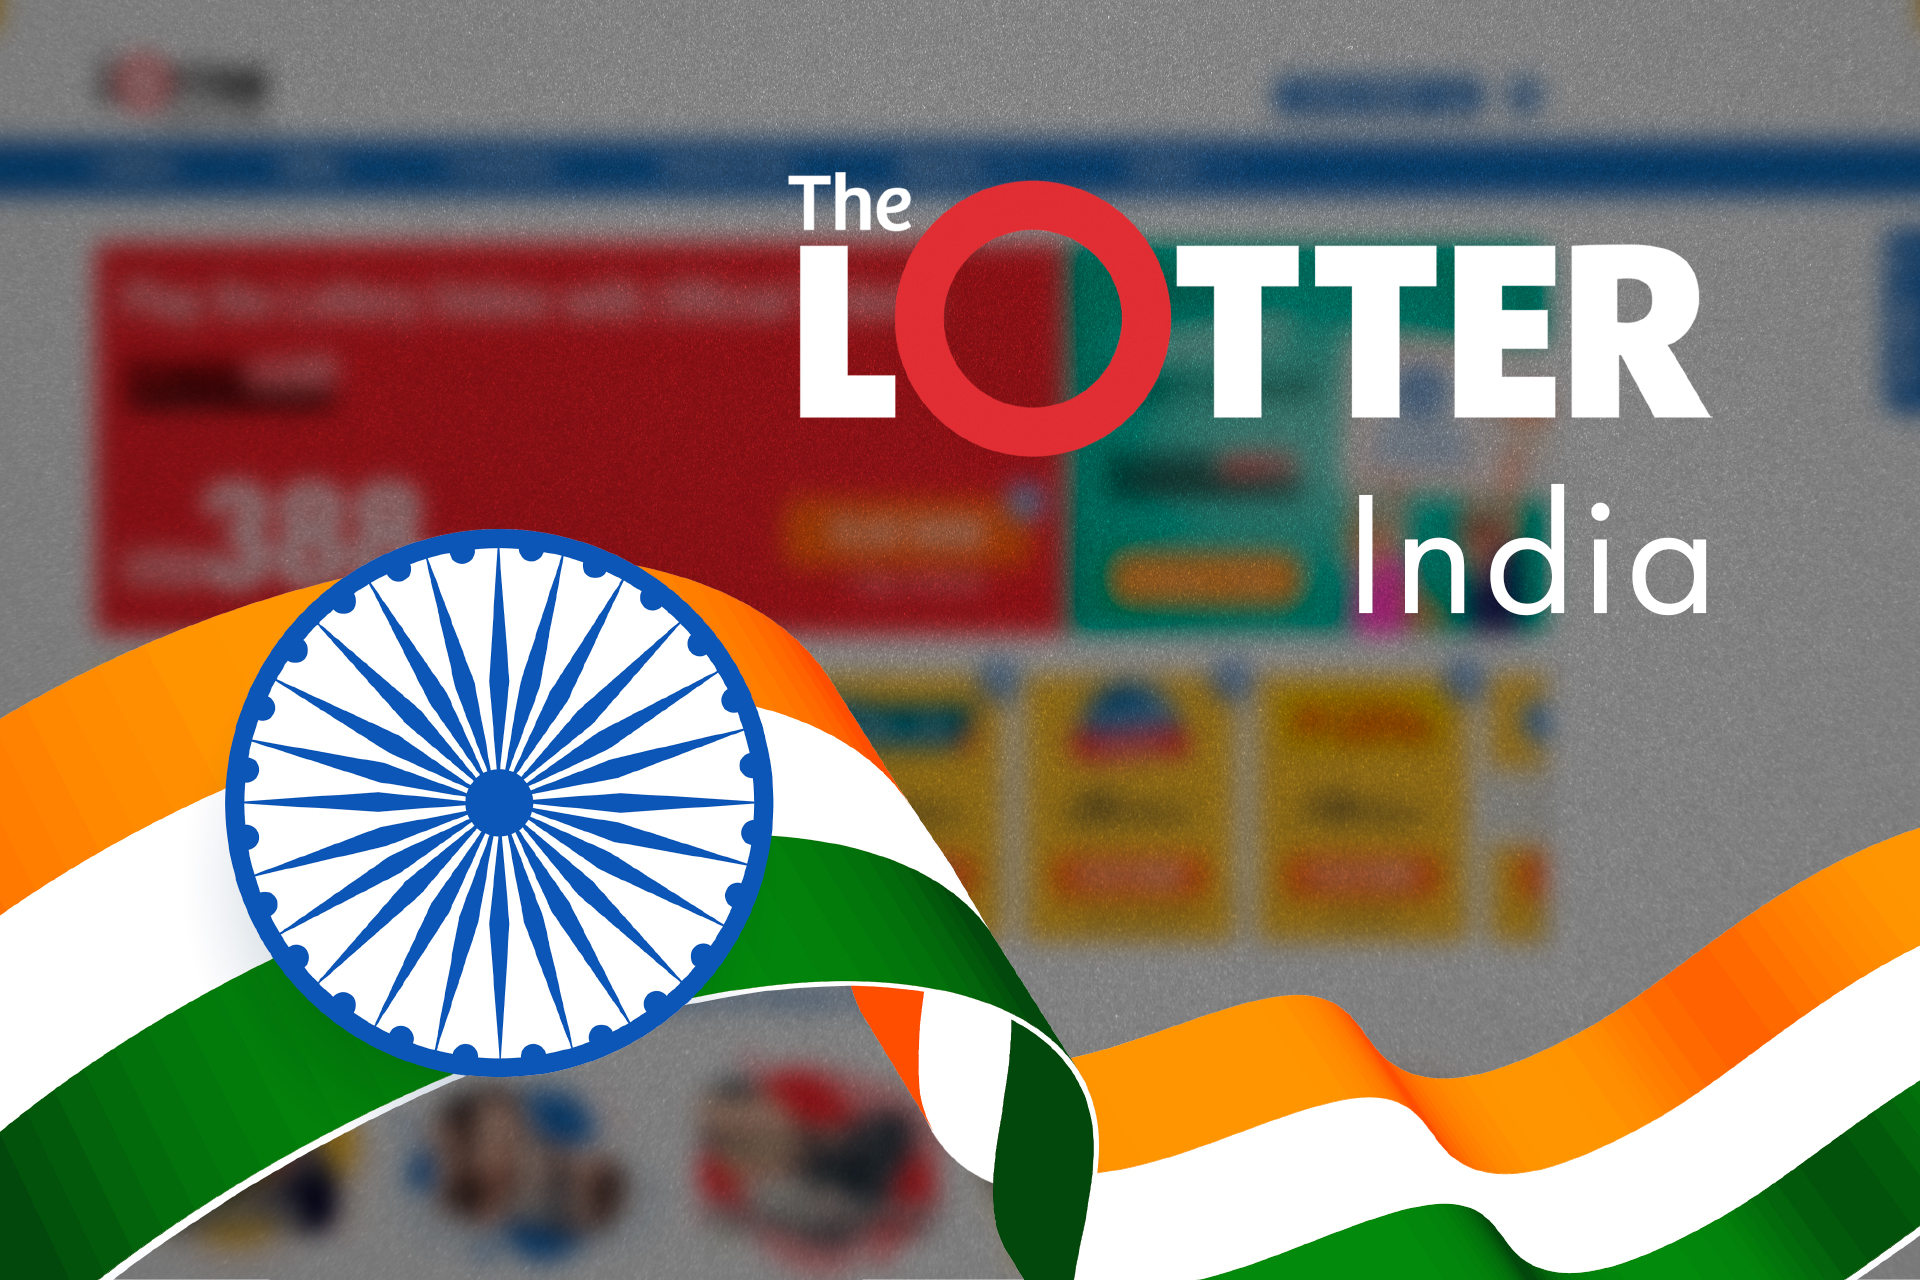 Despite the most lotteries are European and American users from India can buy tickets to any of them using their account on TheLotter.